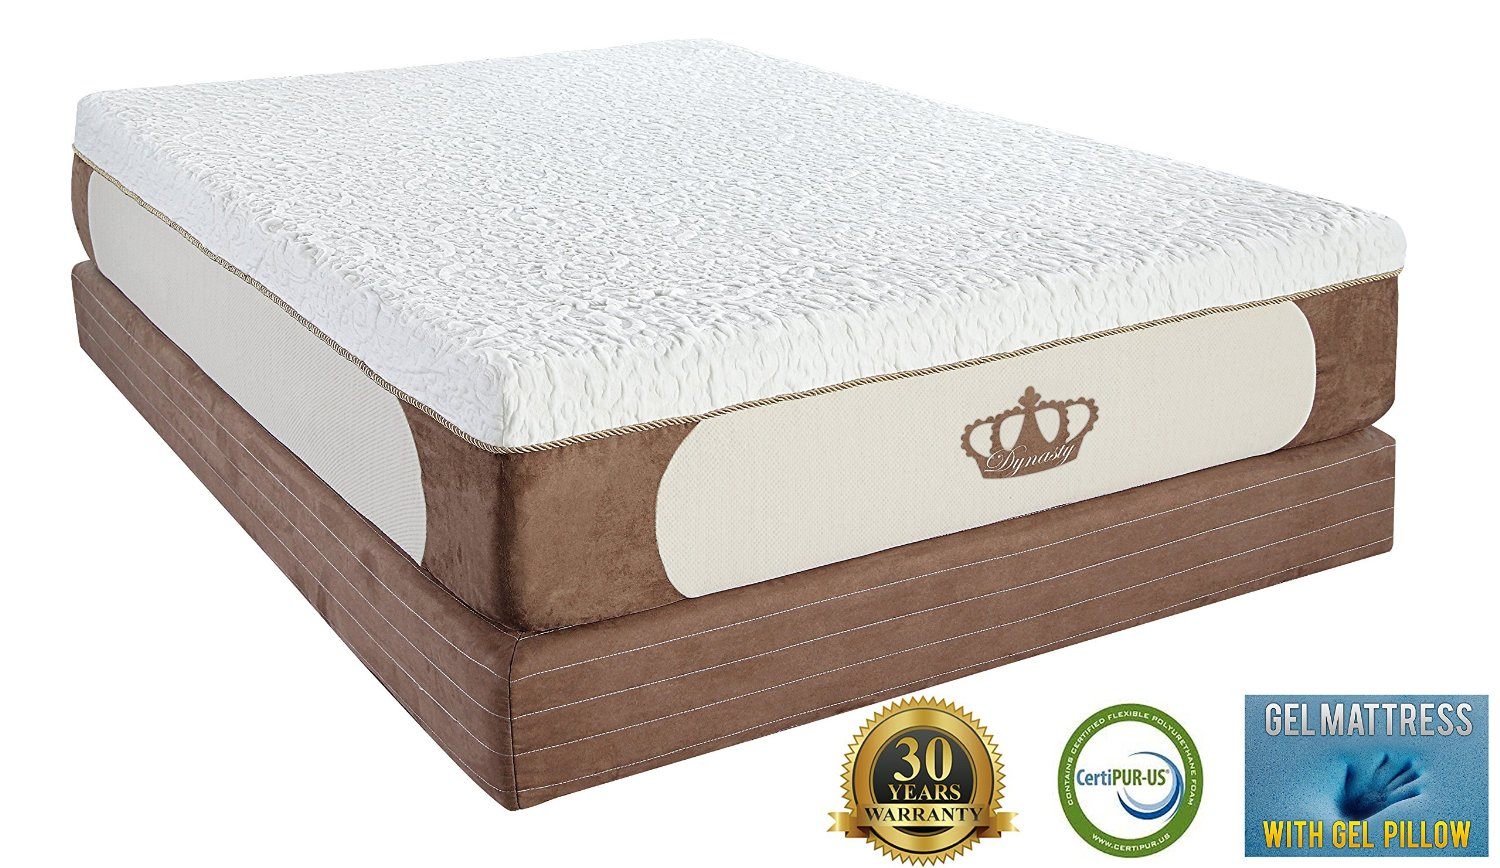 Best Gel Memory Foam Mattress DynastyMattress Cool Breeze 12-Inch